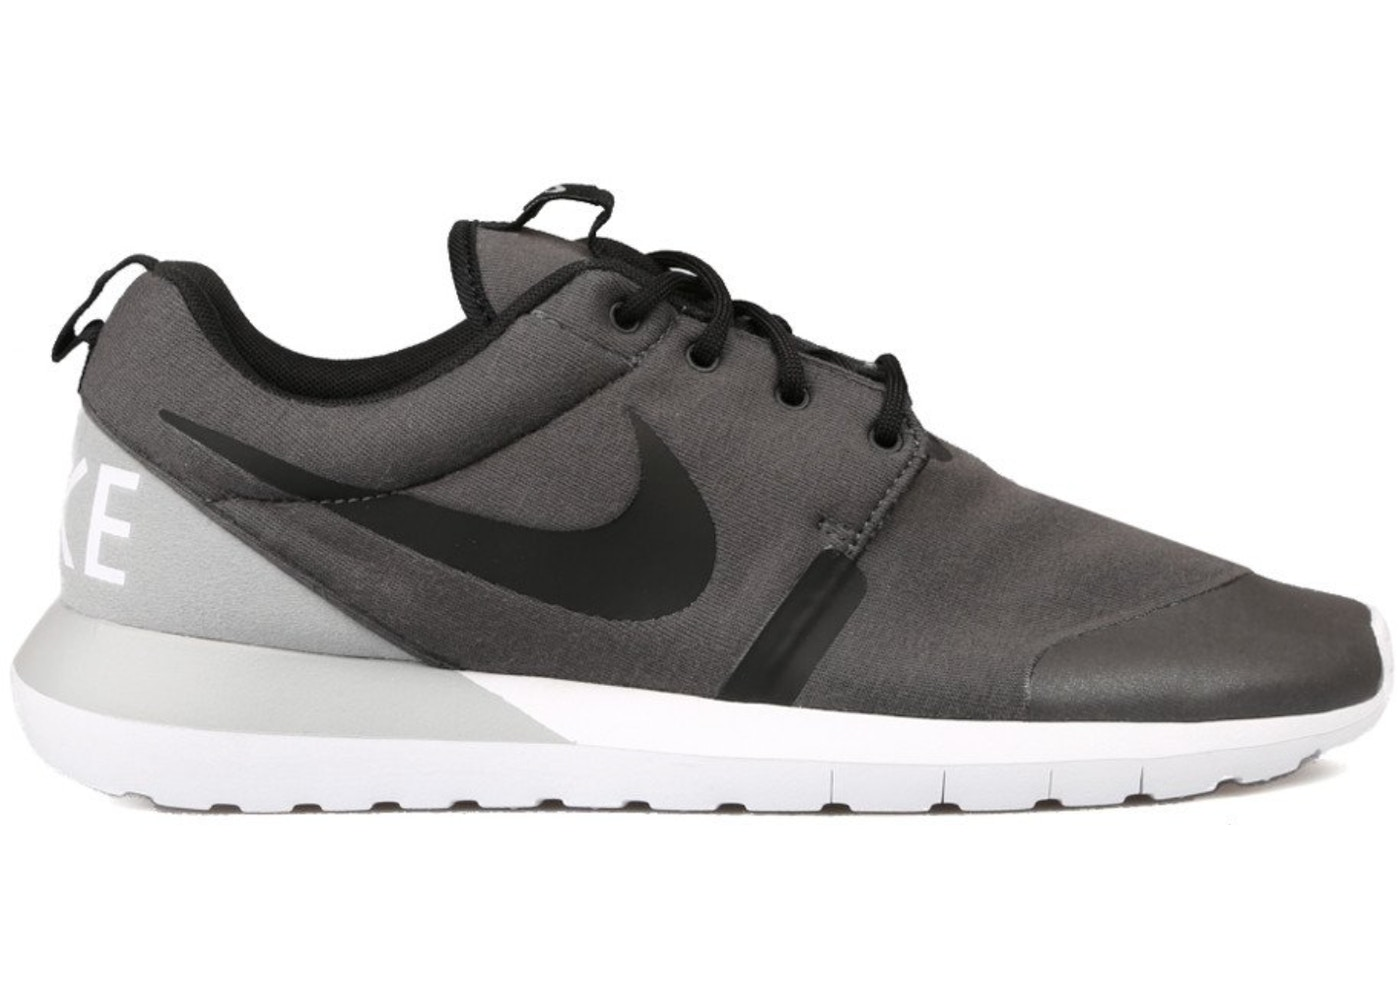 51ffdff929b41 Sell. or Ask. Size --. View All Bids. Nike Roshe Run Winter ...